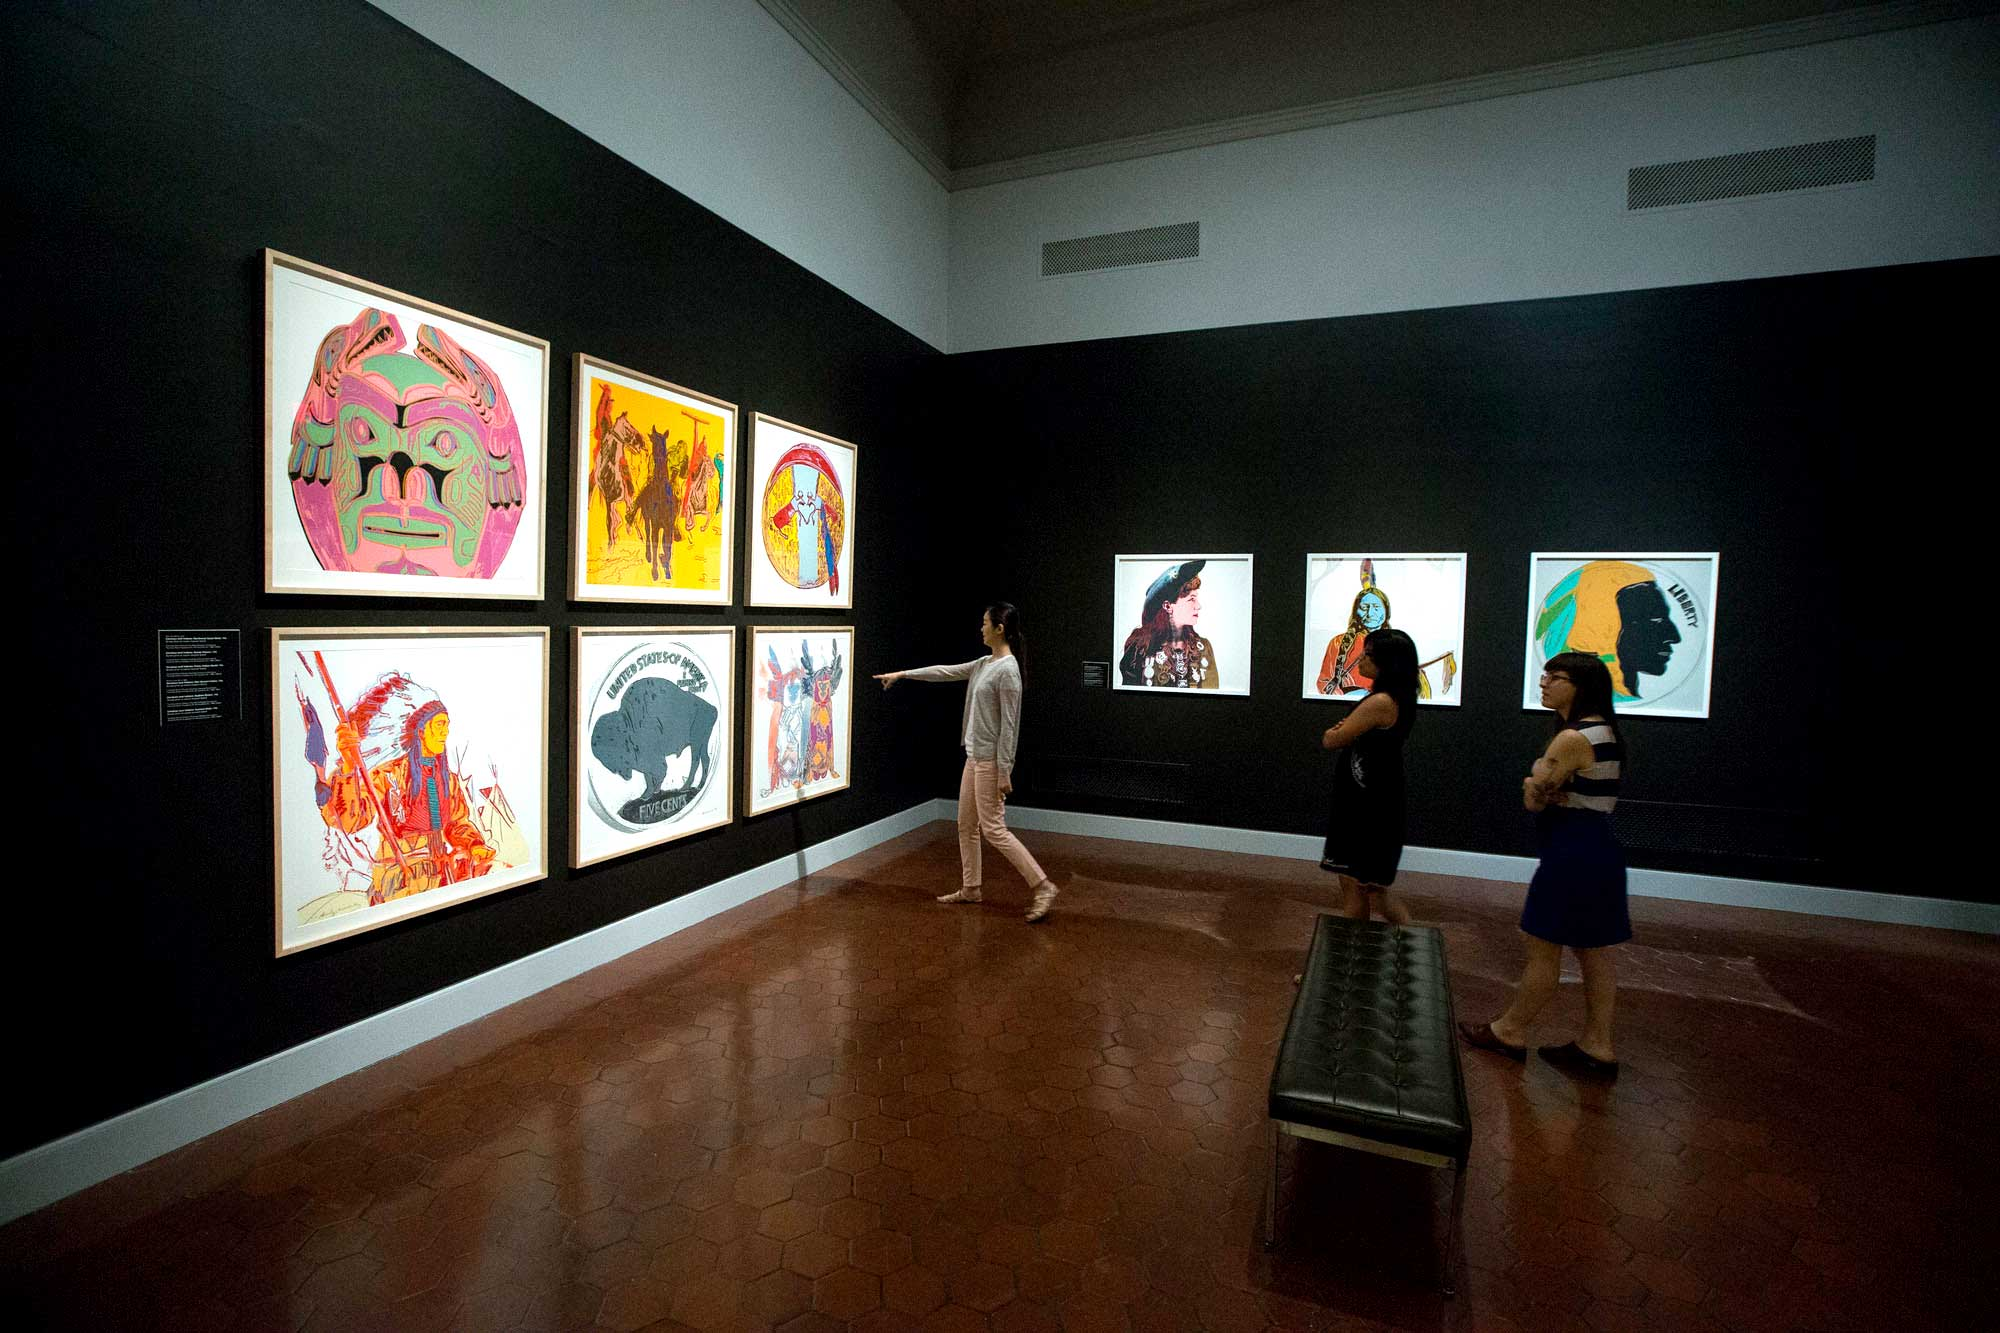 The Warhol exhibition was on display from May until September. (Photo by Dan Addison, University Communications)